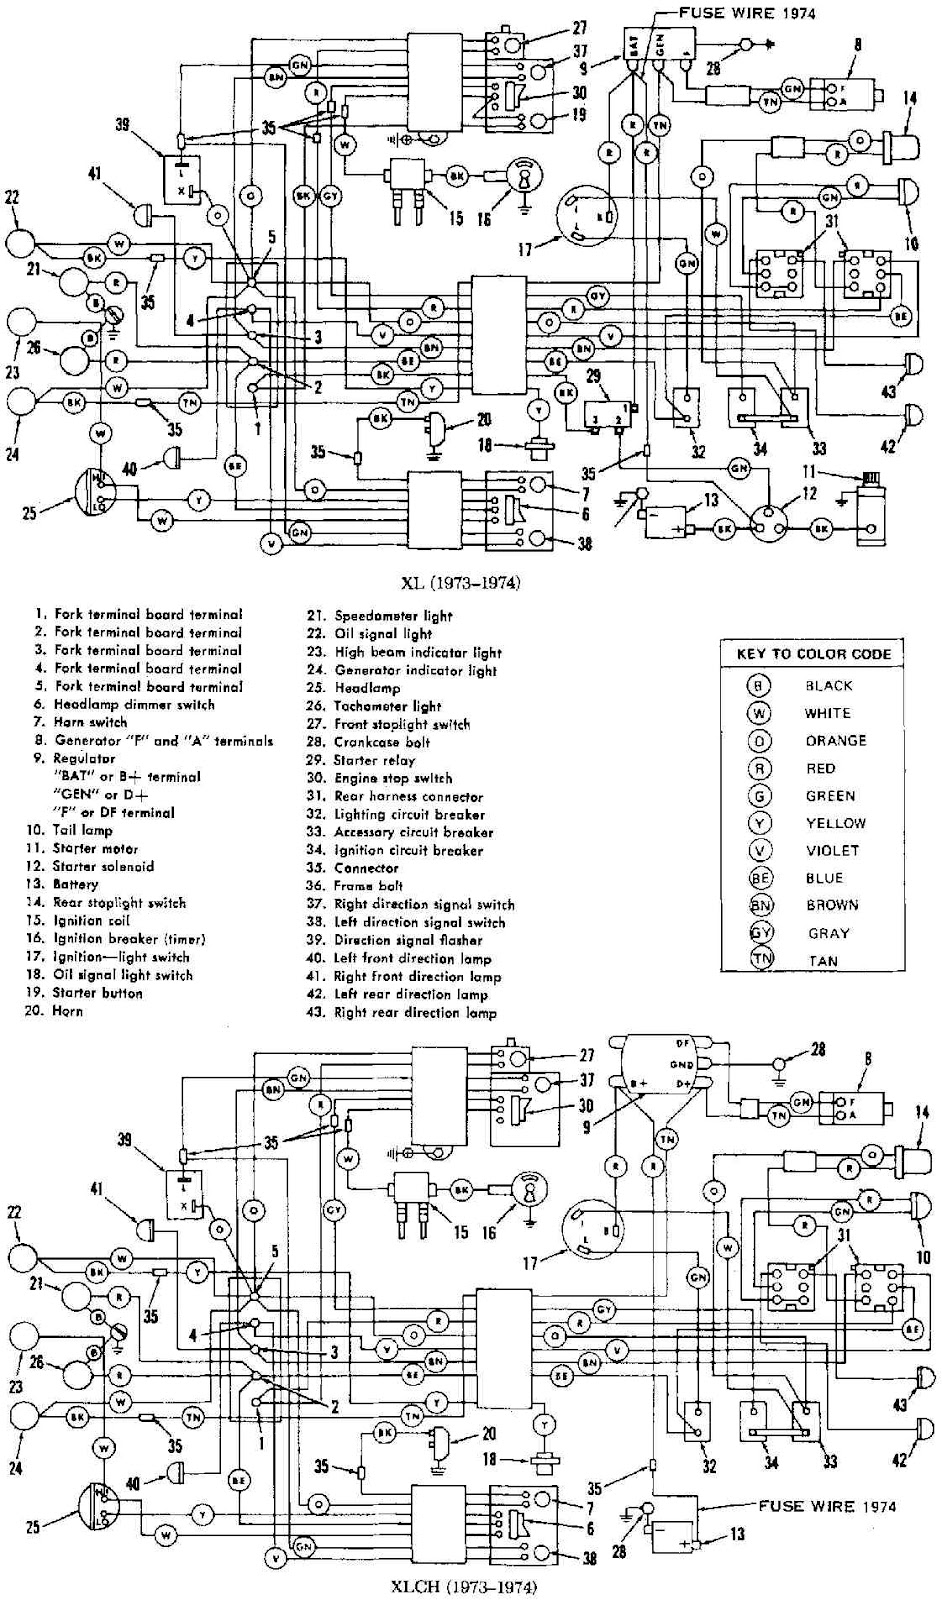 05 sportster schematic picture